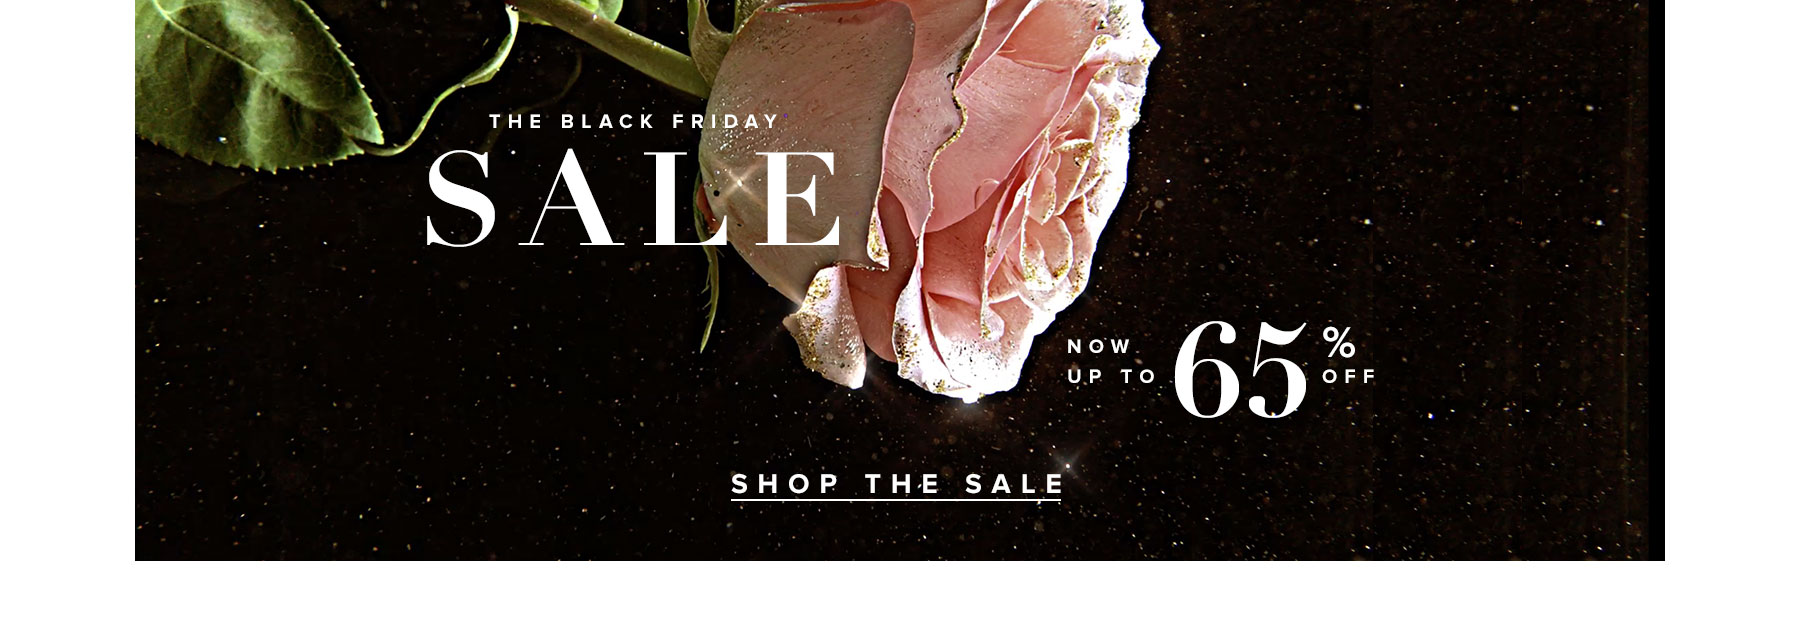 The Black Friday Sale. Now up to 65% off. Shop the Sale.